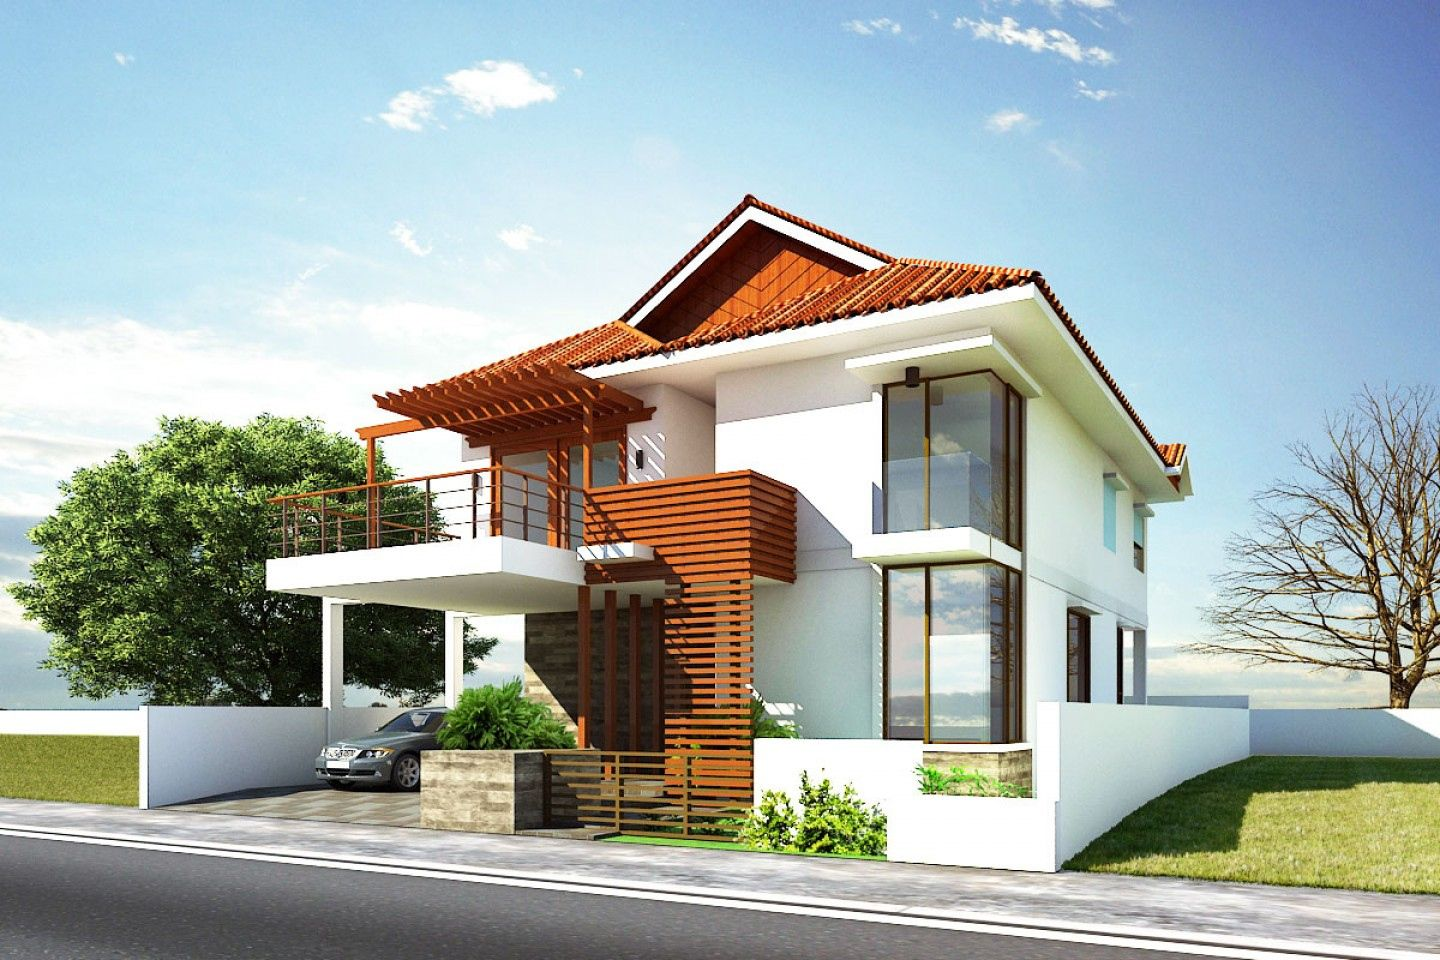 Beautiful best house designs in the world photos check more at http www